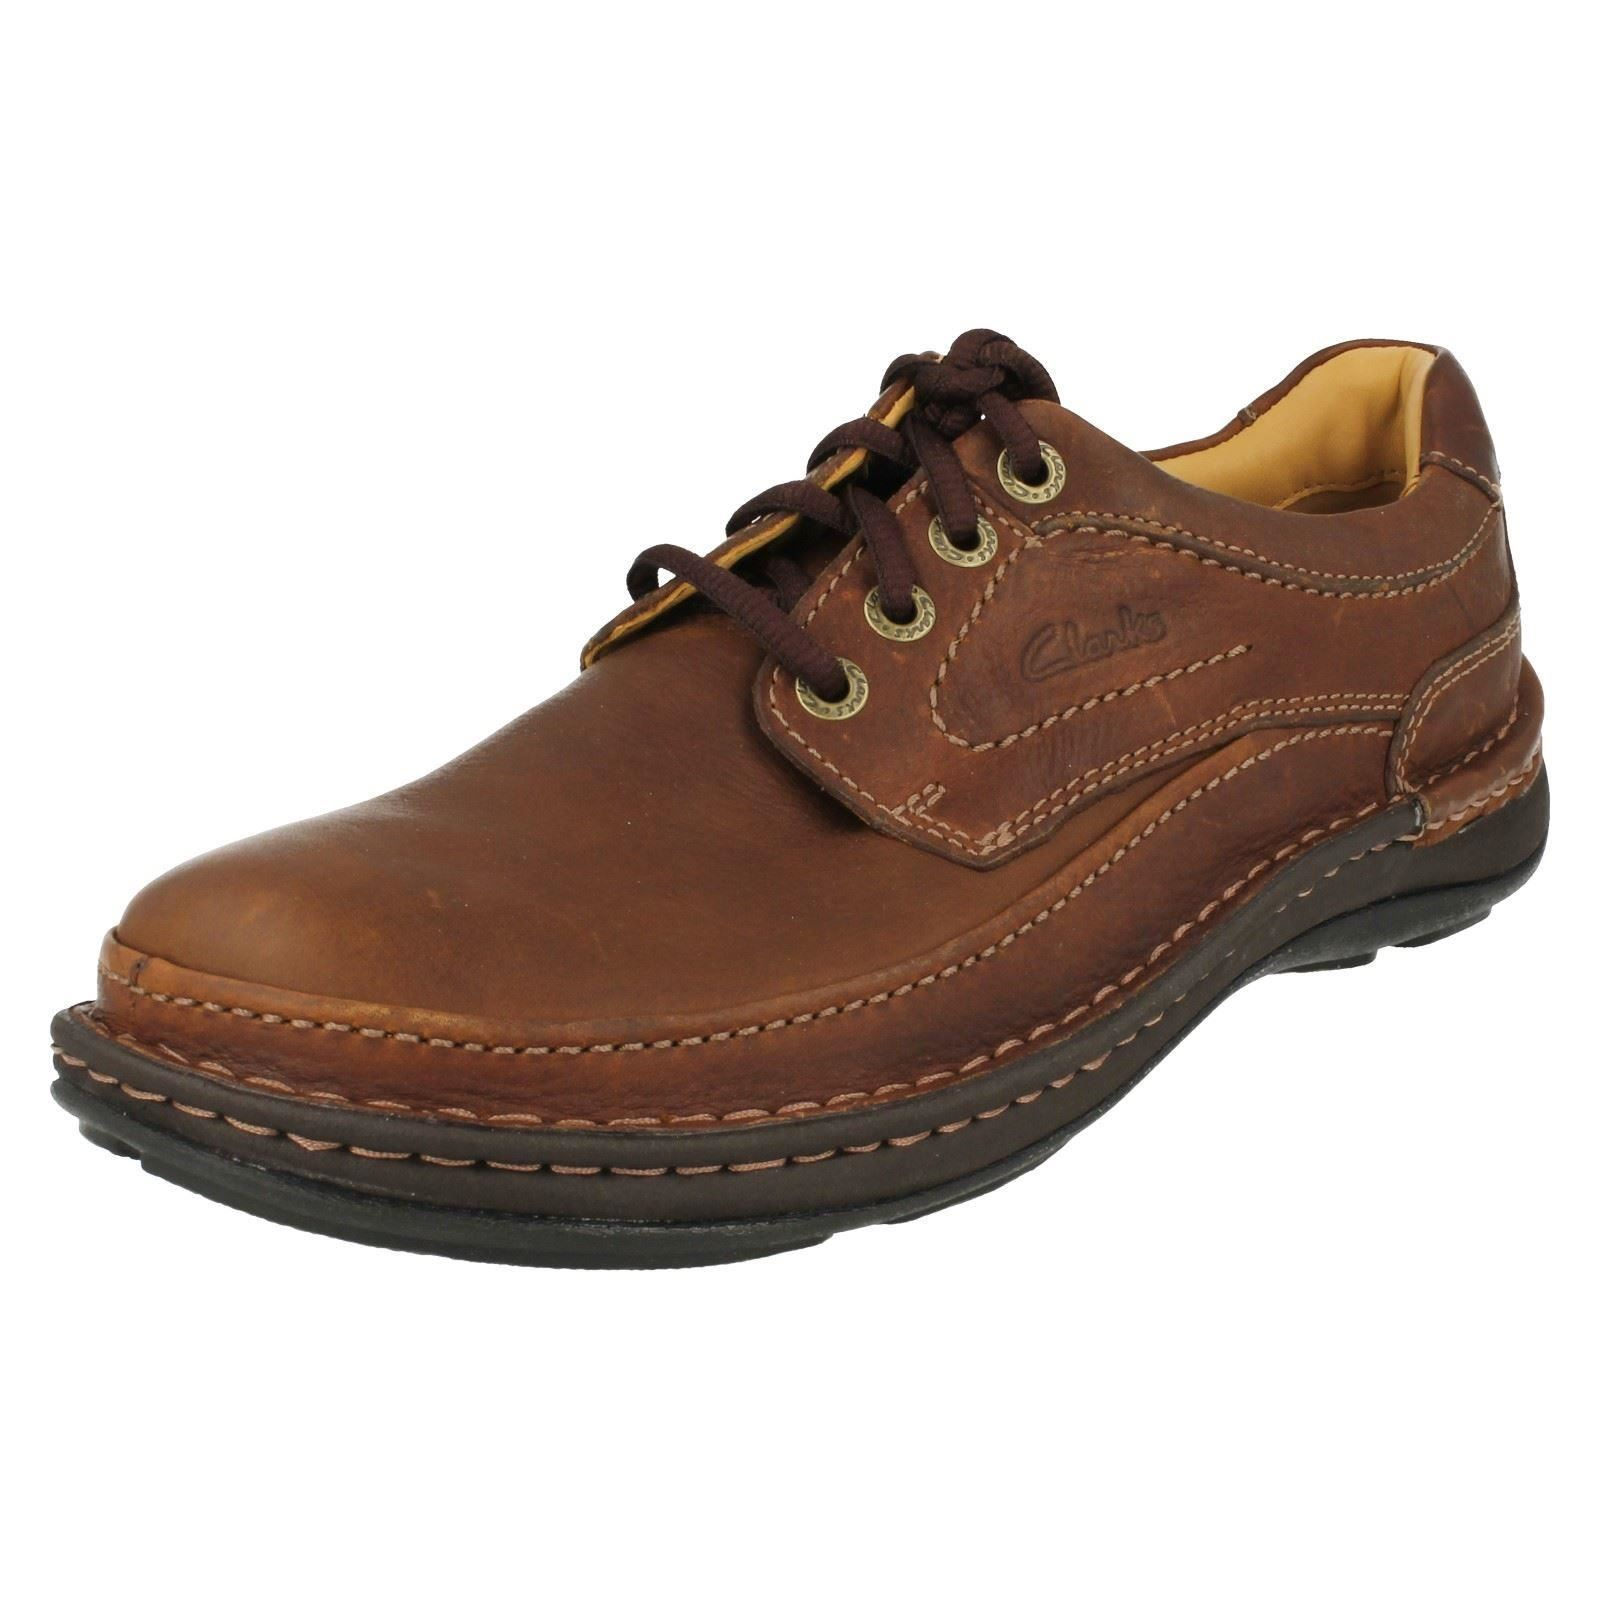 Clarks Barker Shoes